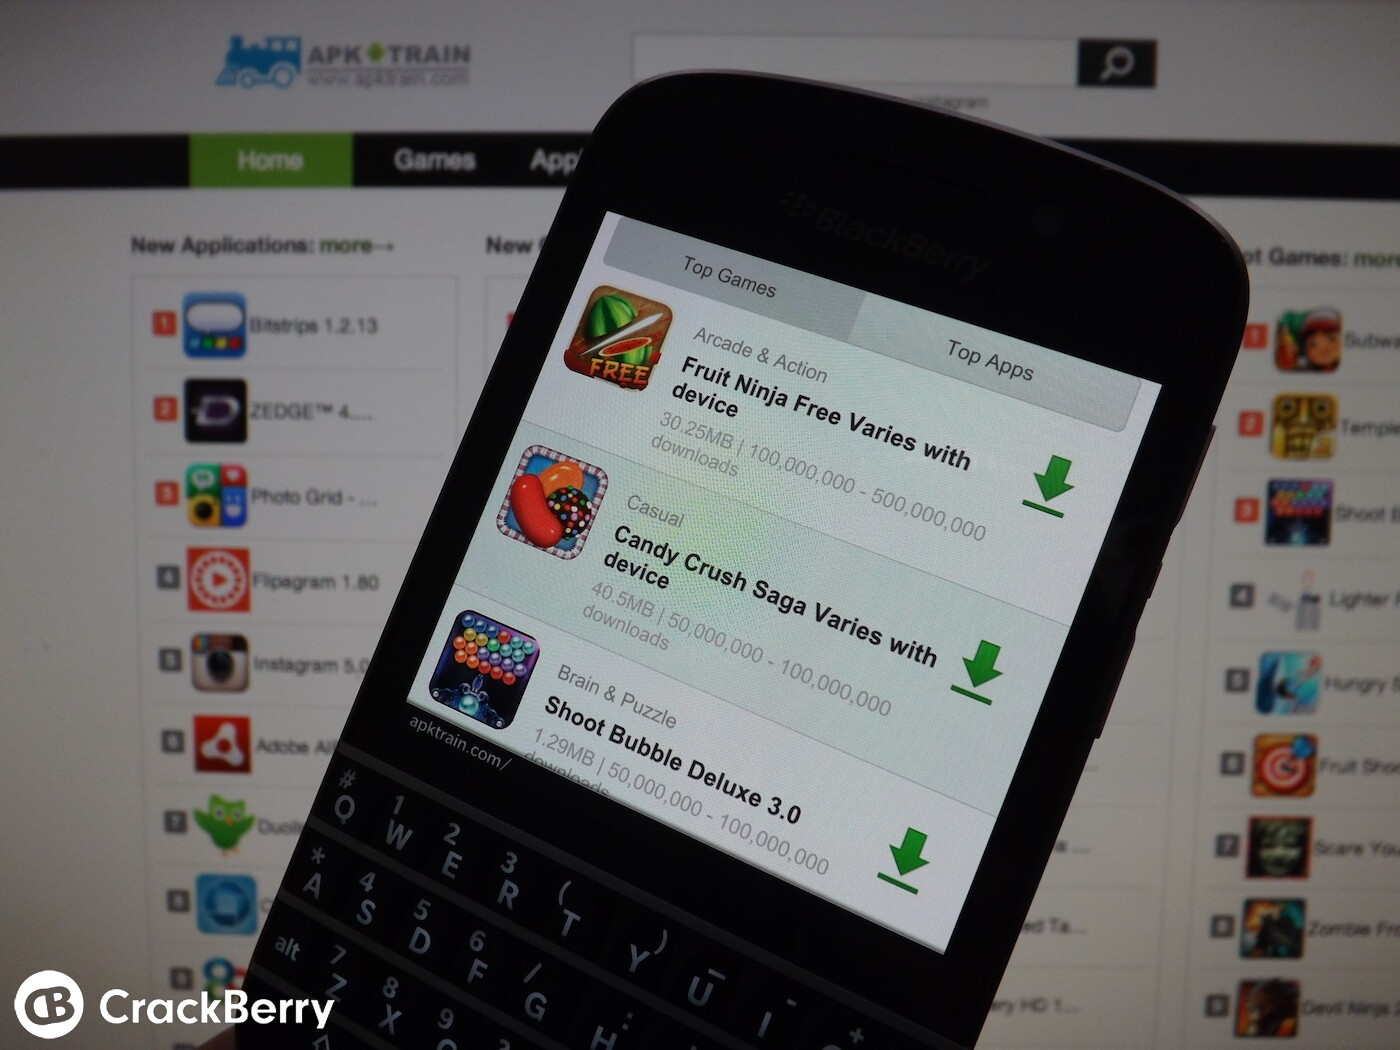 Installing Android apps on BlackBerry 10 just got easier